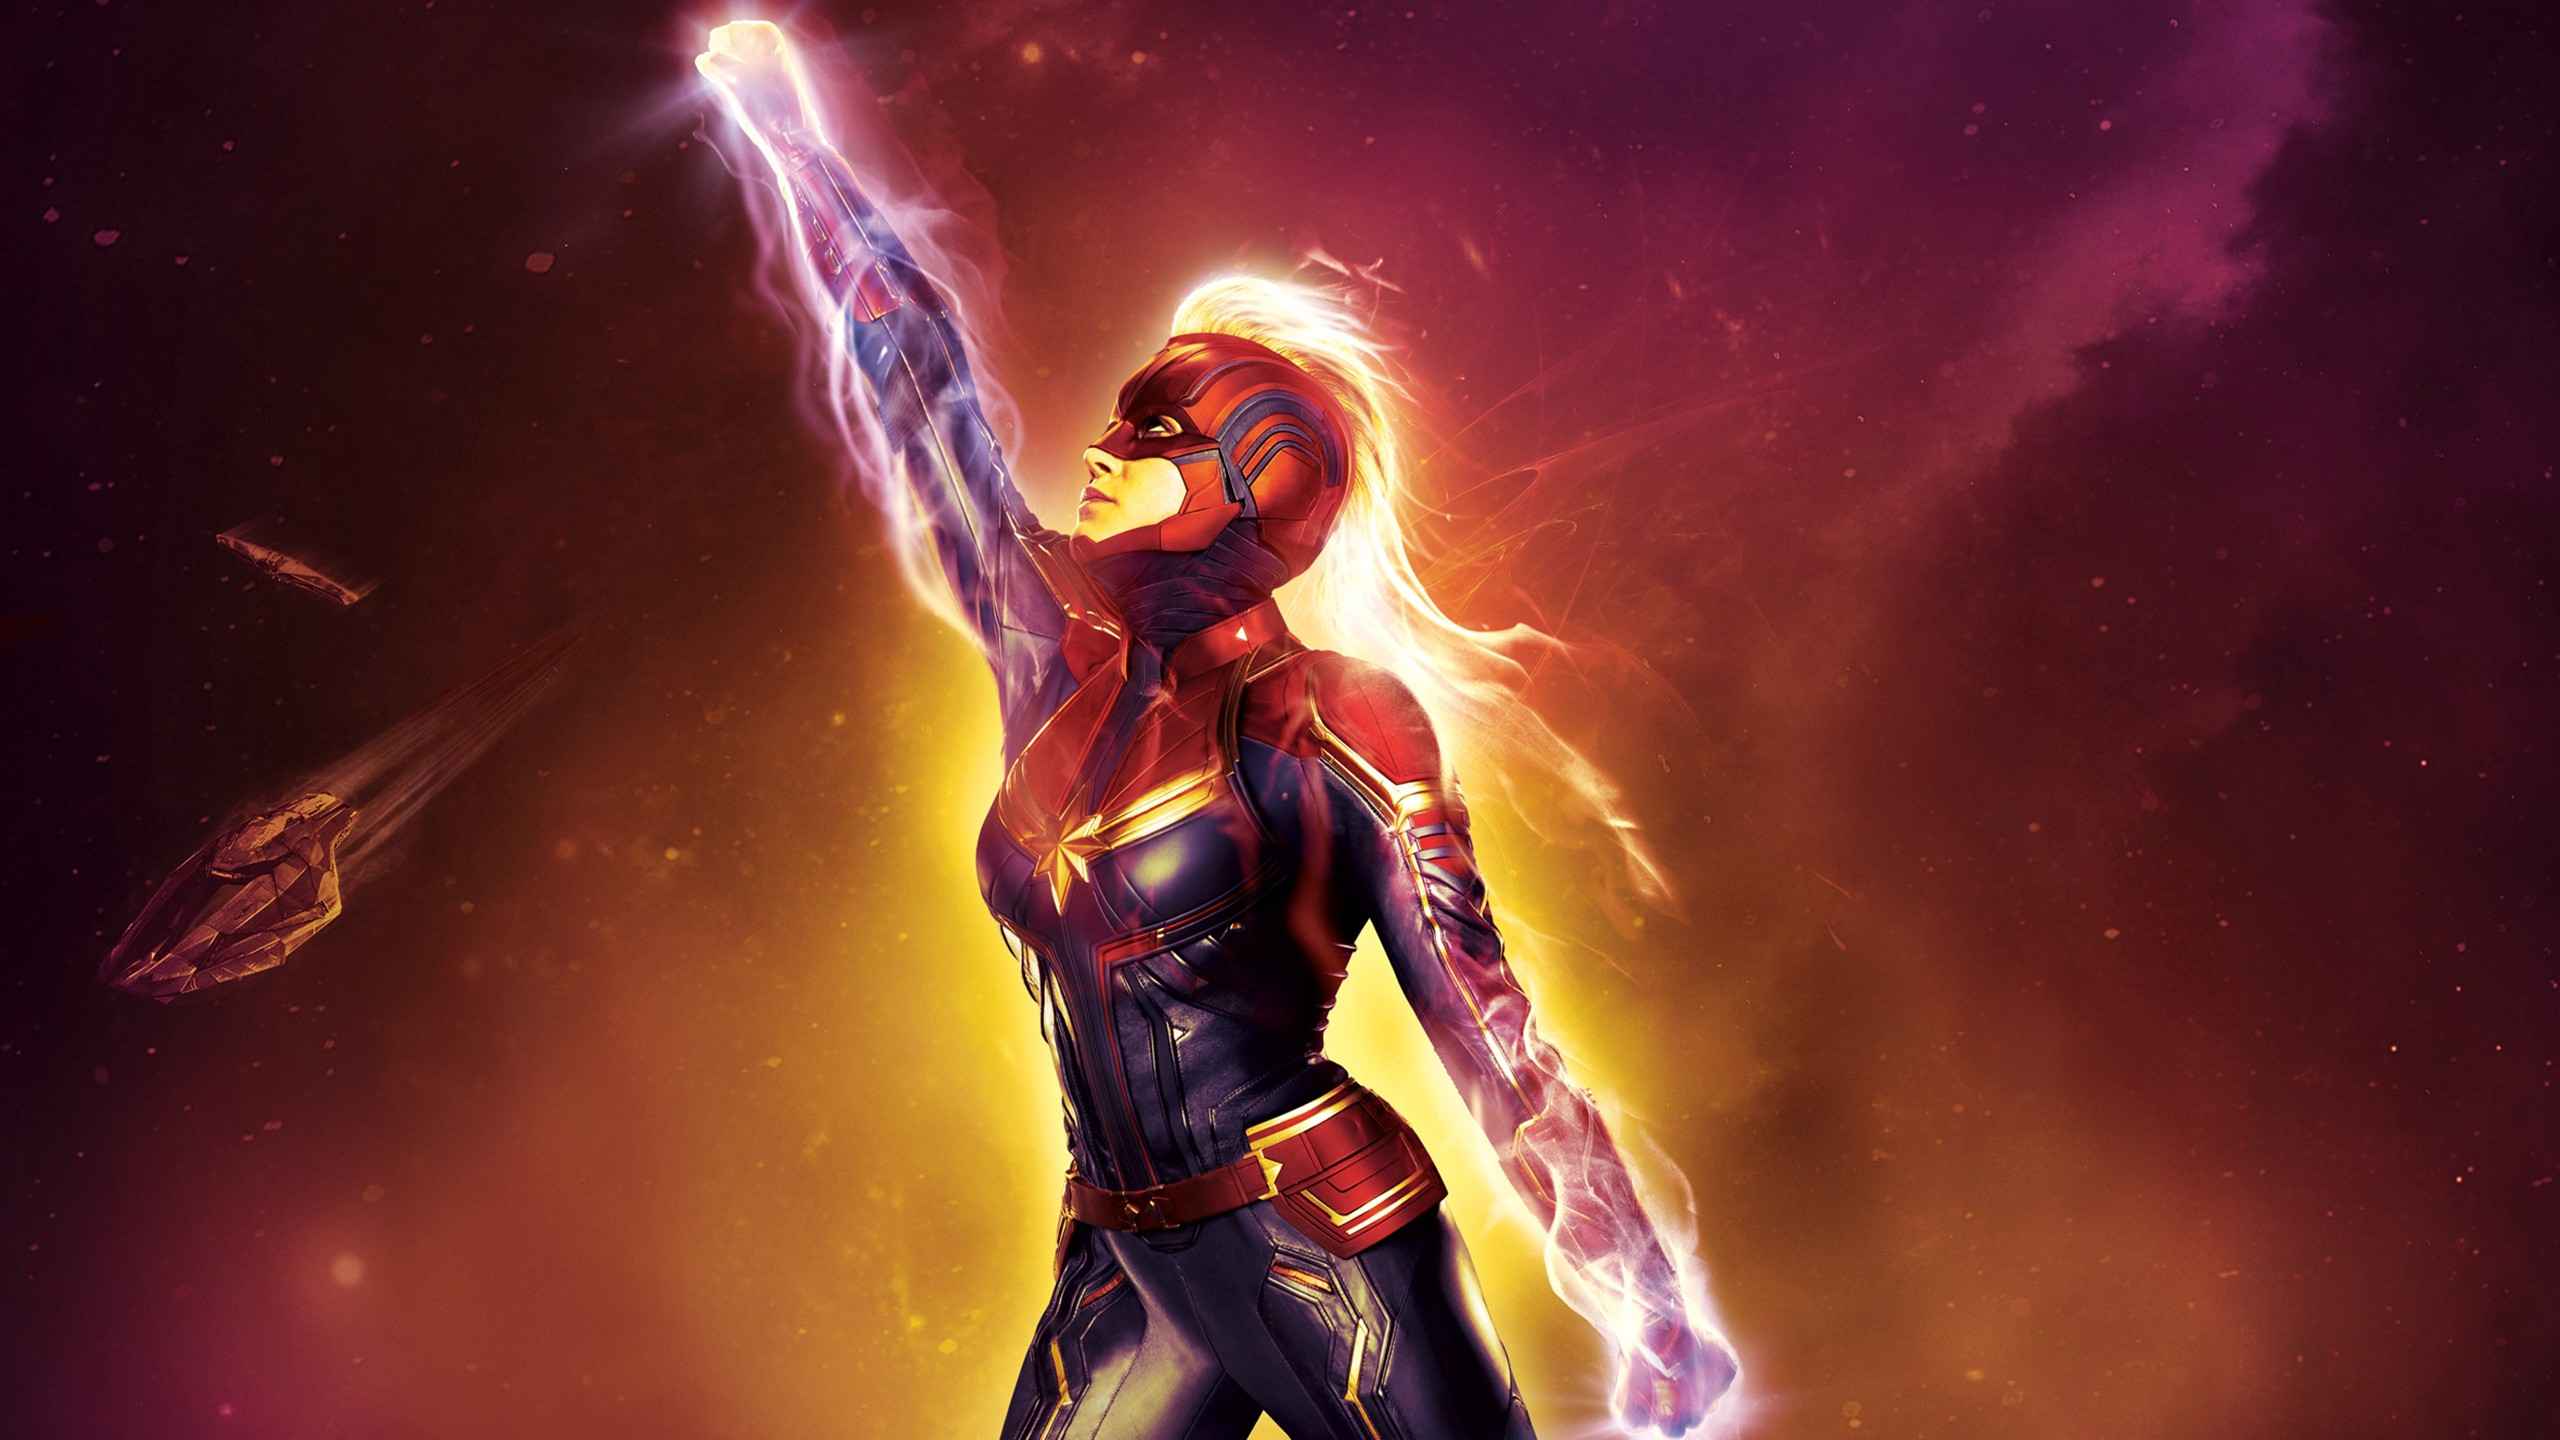 3d Wallpaper Iphone 7 Captain Marvel Wallpapers Hd Wallpapers Id 27771